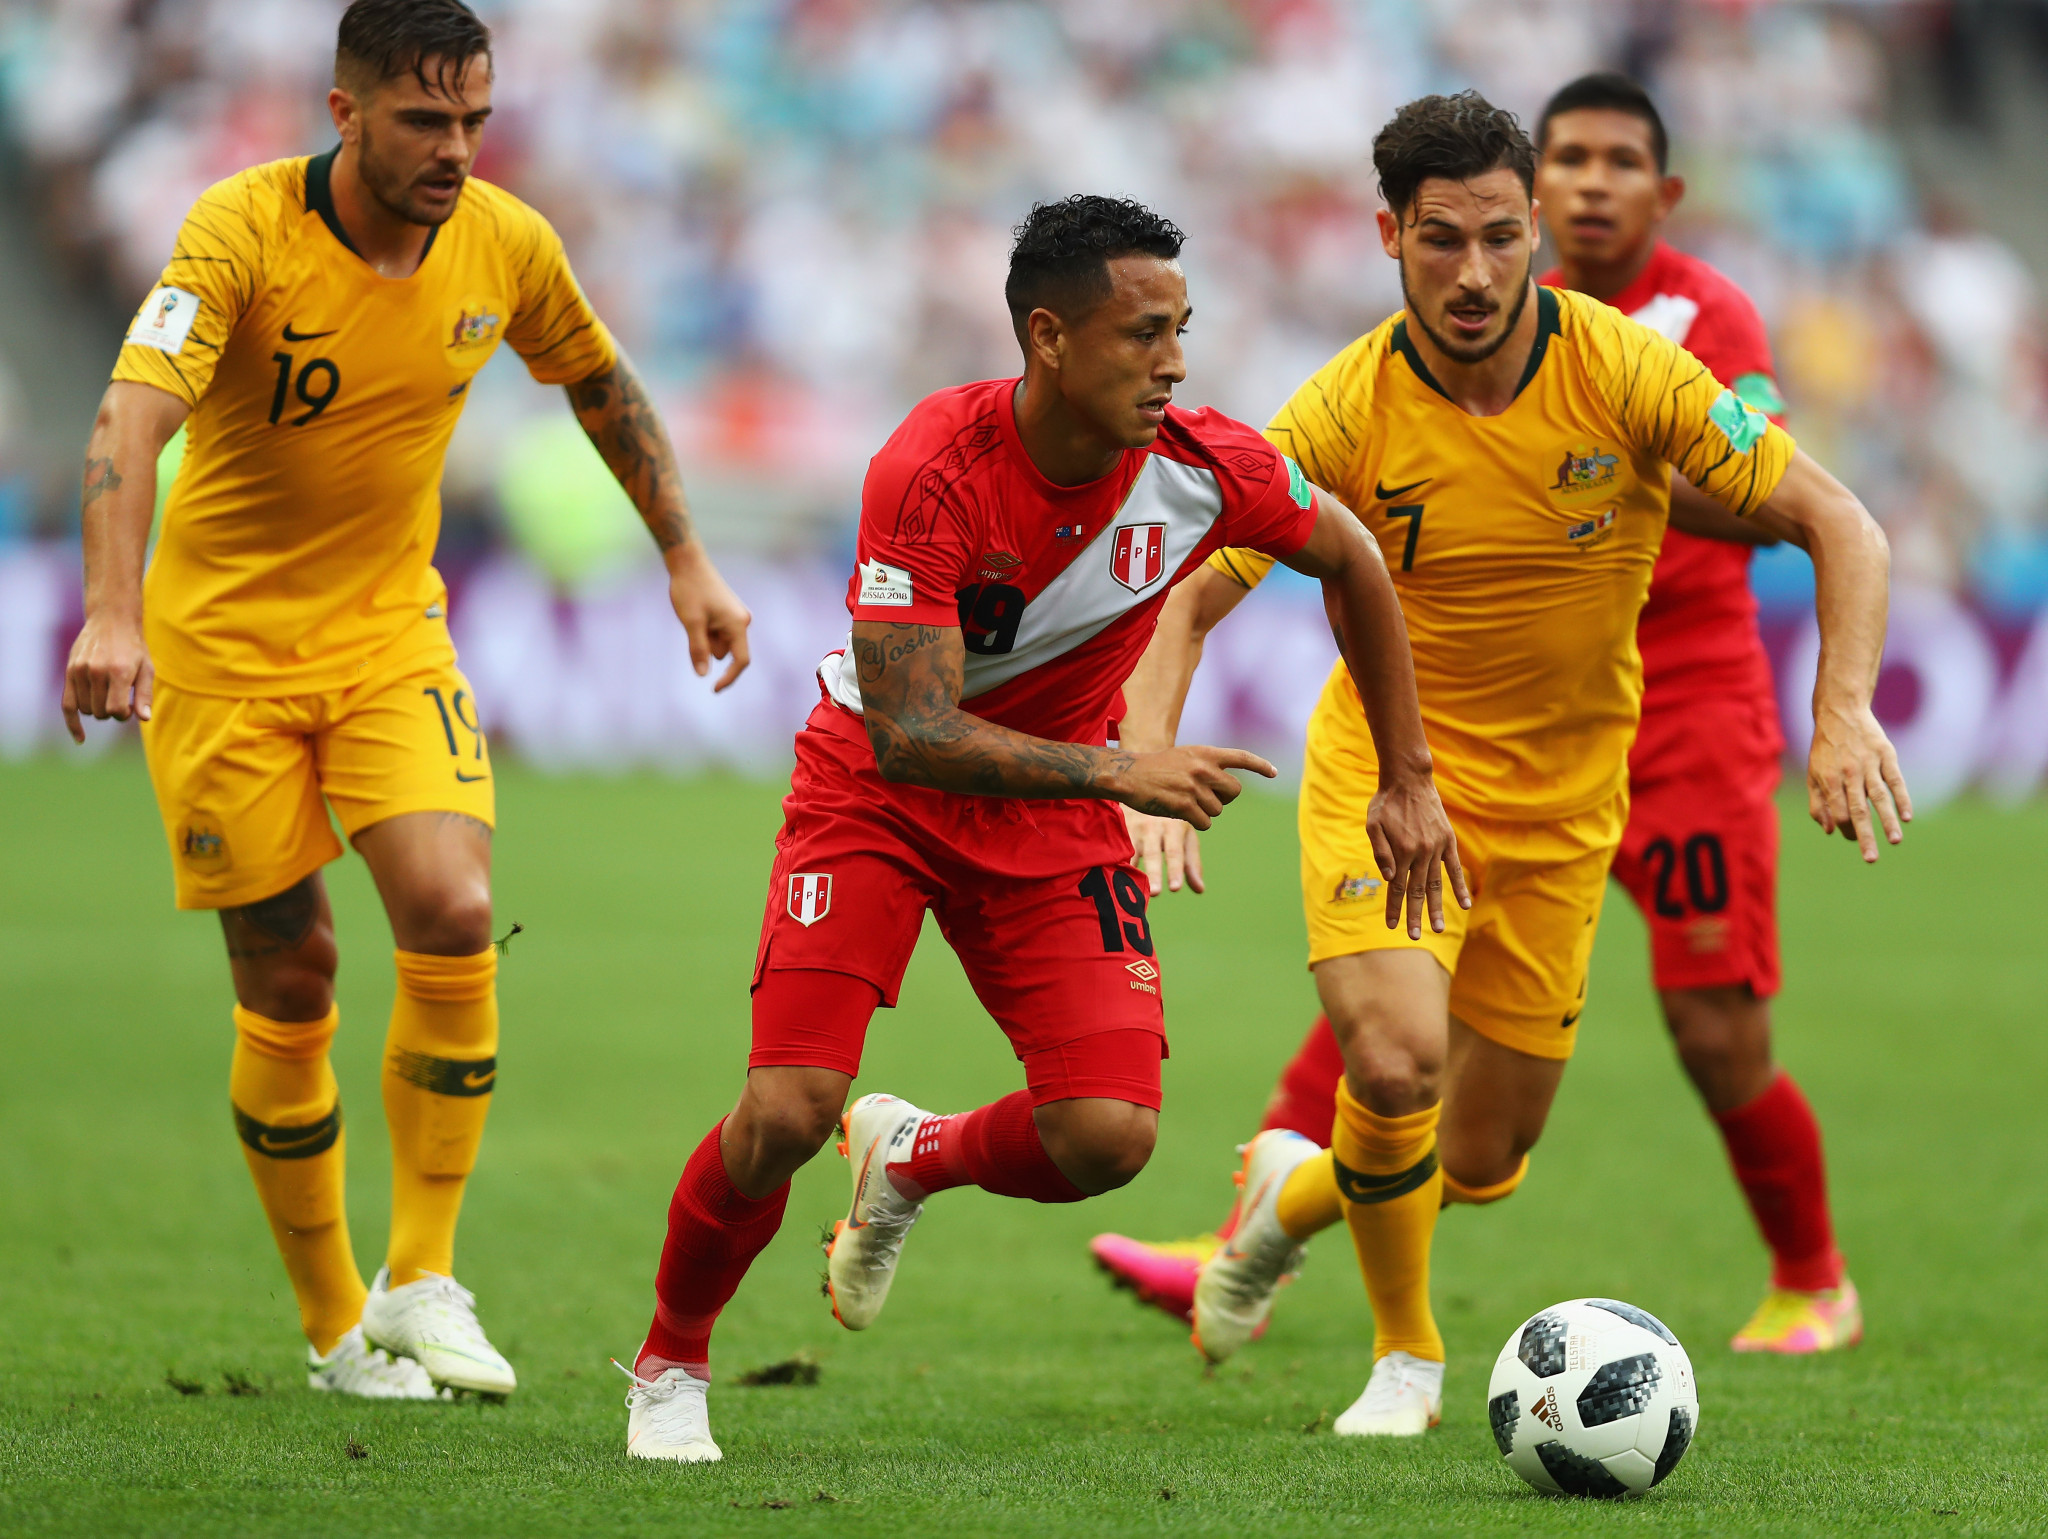 Australia pictured facing Peru during the FIFA World Cup ©Getty Images